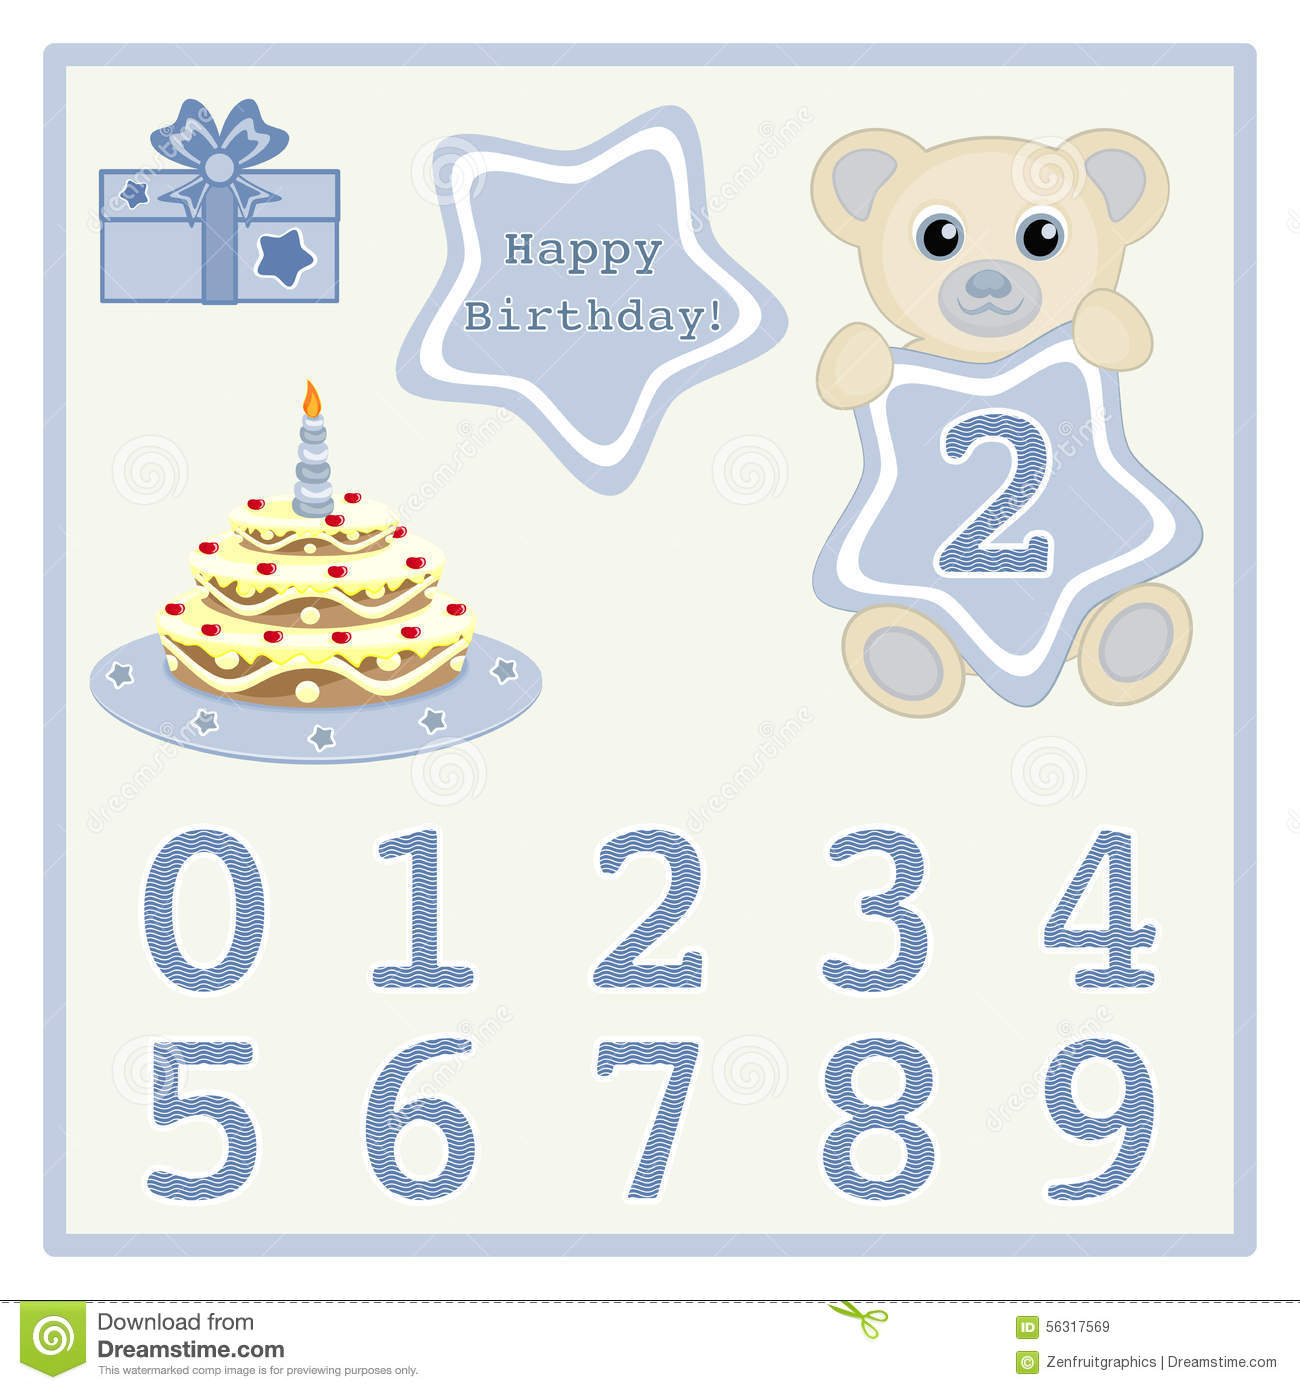 Cute Baby Boy Bears Vector Illustration With Star And Numbers Symbol Birthday Cake Candle